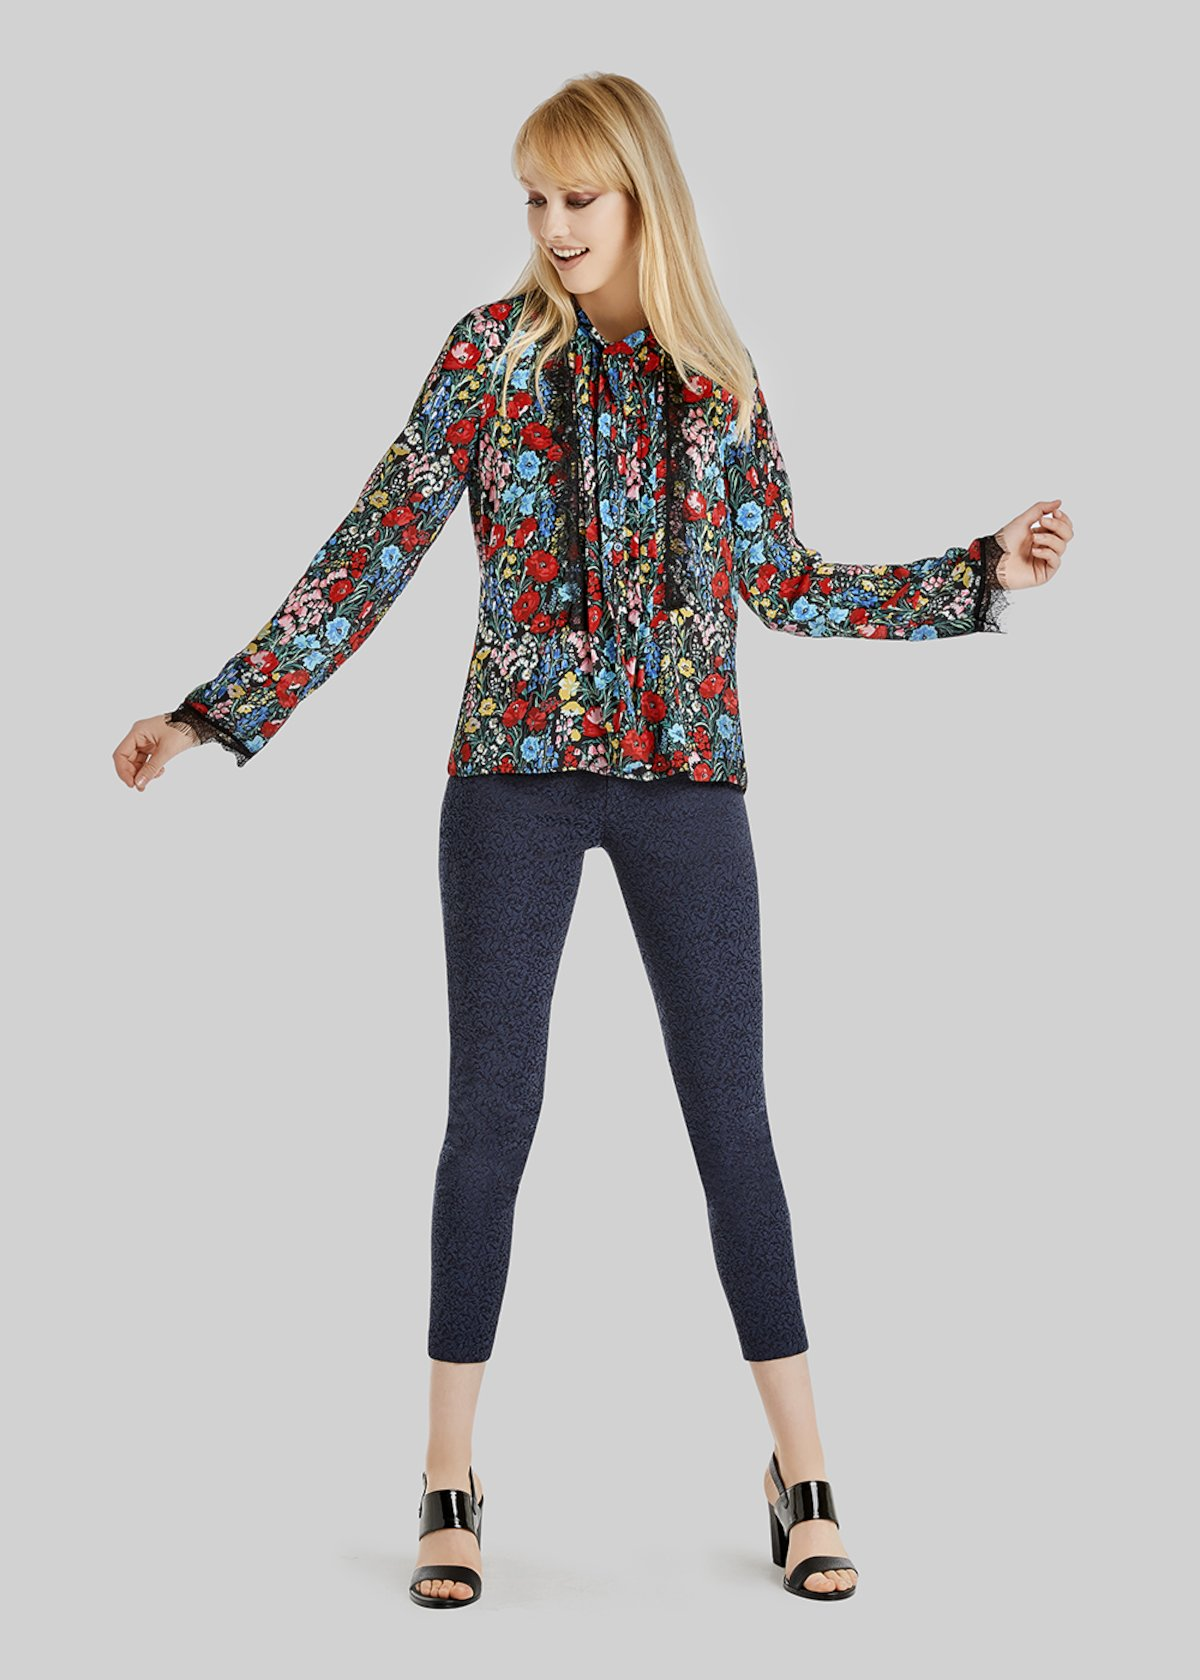 Caroline georgette blouse with wonderland pattern